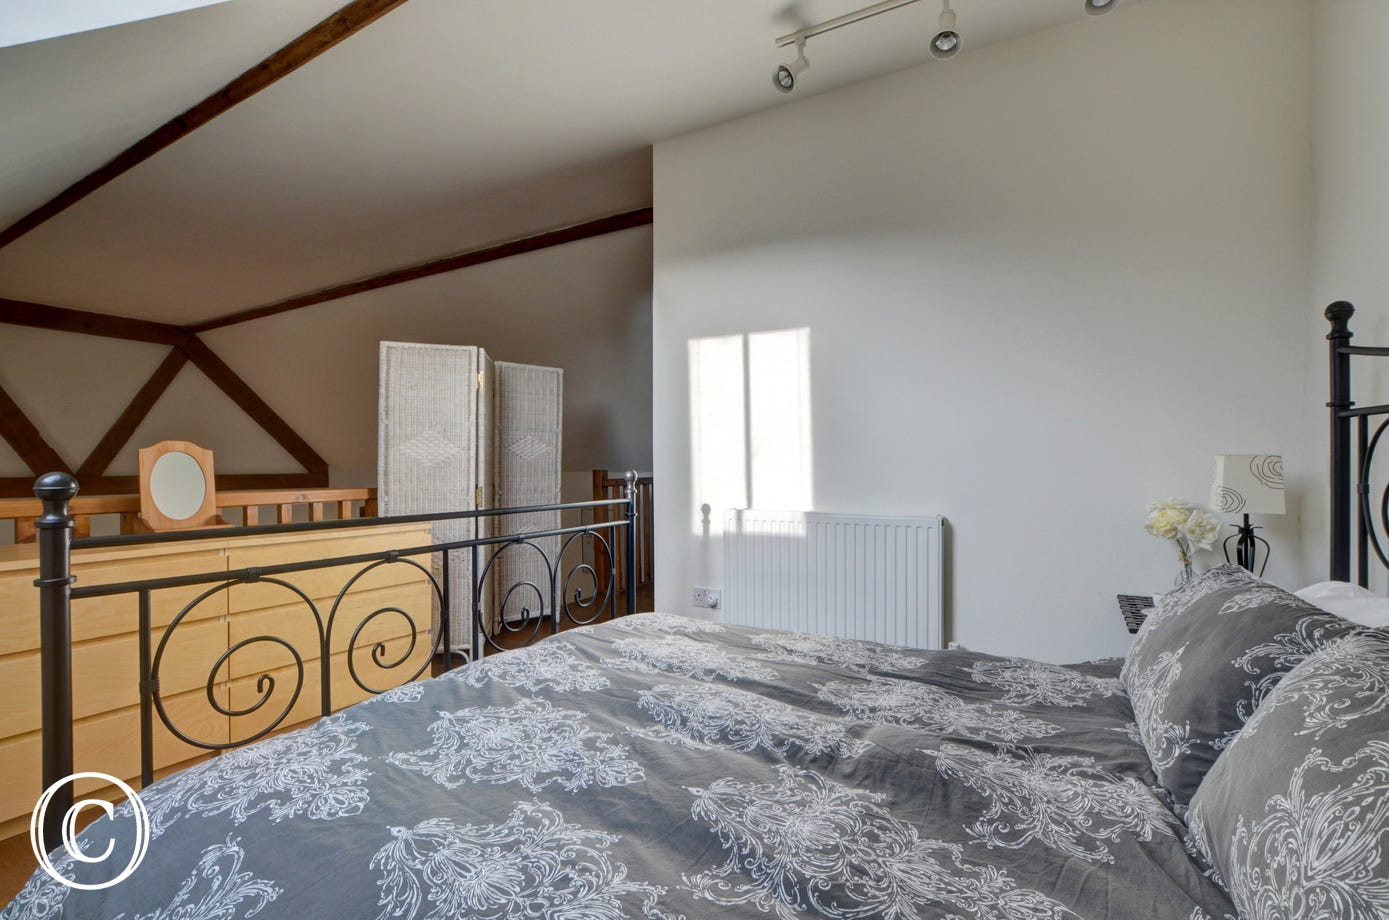 A staircase leads up to a mezzanine floor which offers a double bedroom which is open to the high vaulted ceiling and with a balustrade overlooking the living room below